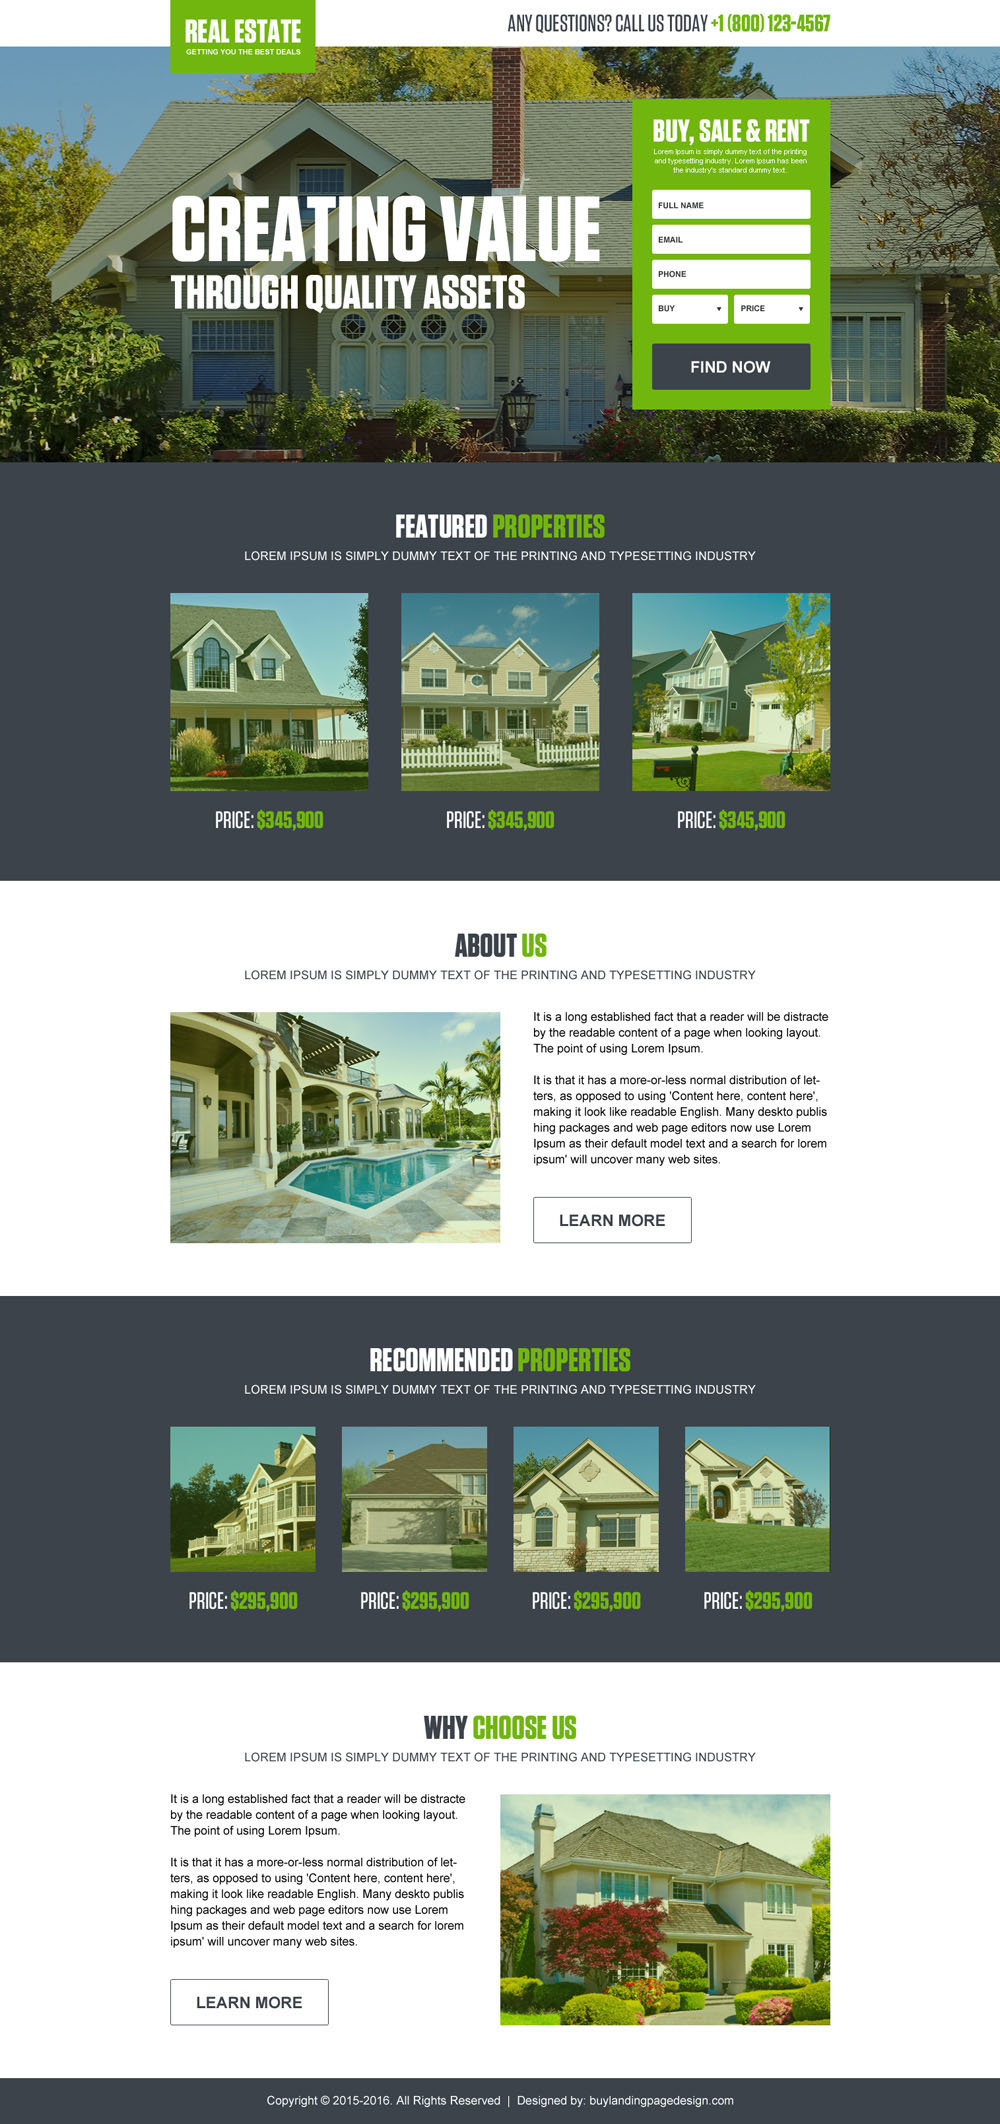 buy-sale-rent-real-estate-property-lead-capture-landing-page-deisgn-that-converts-019